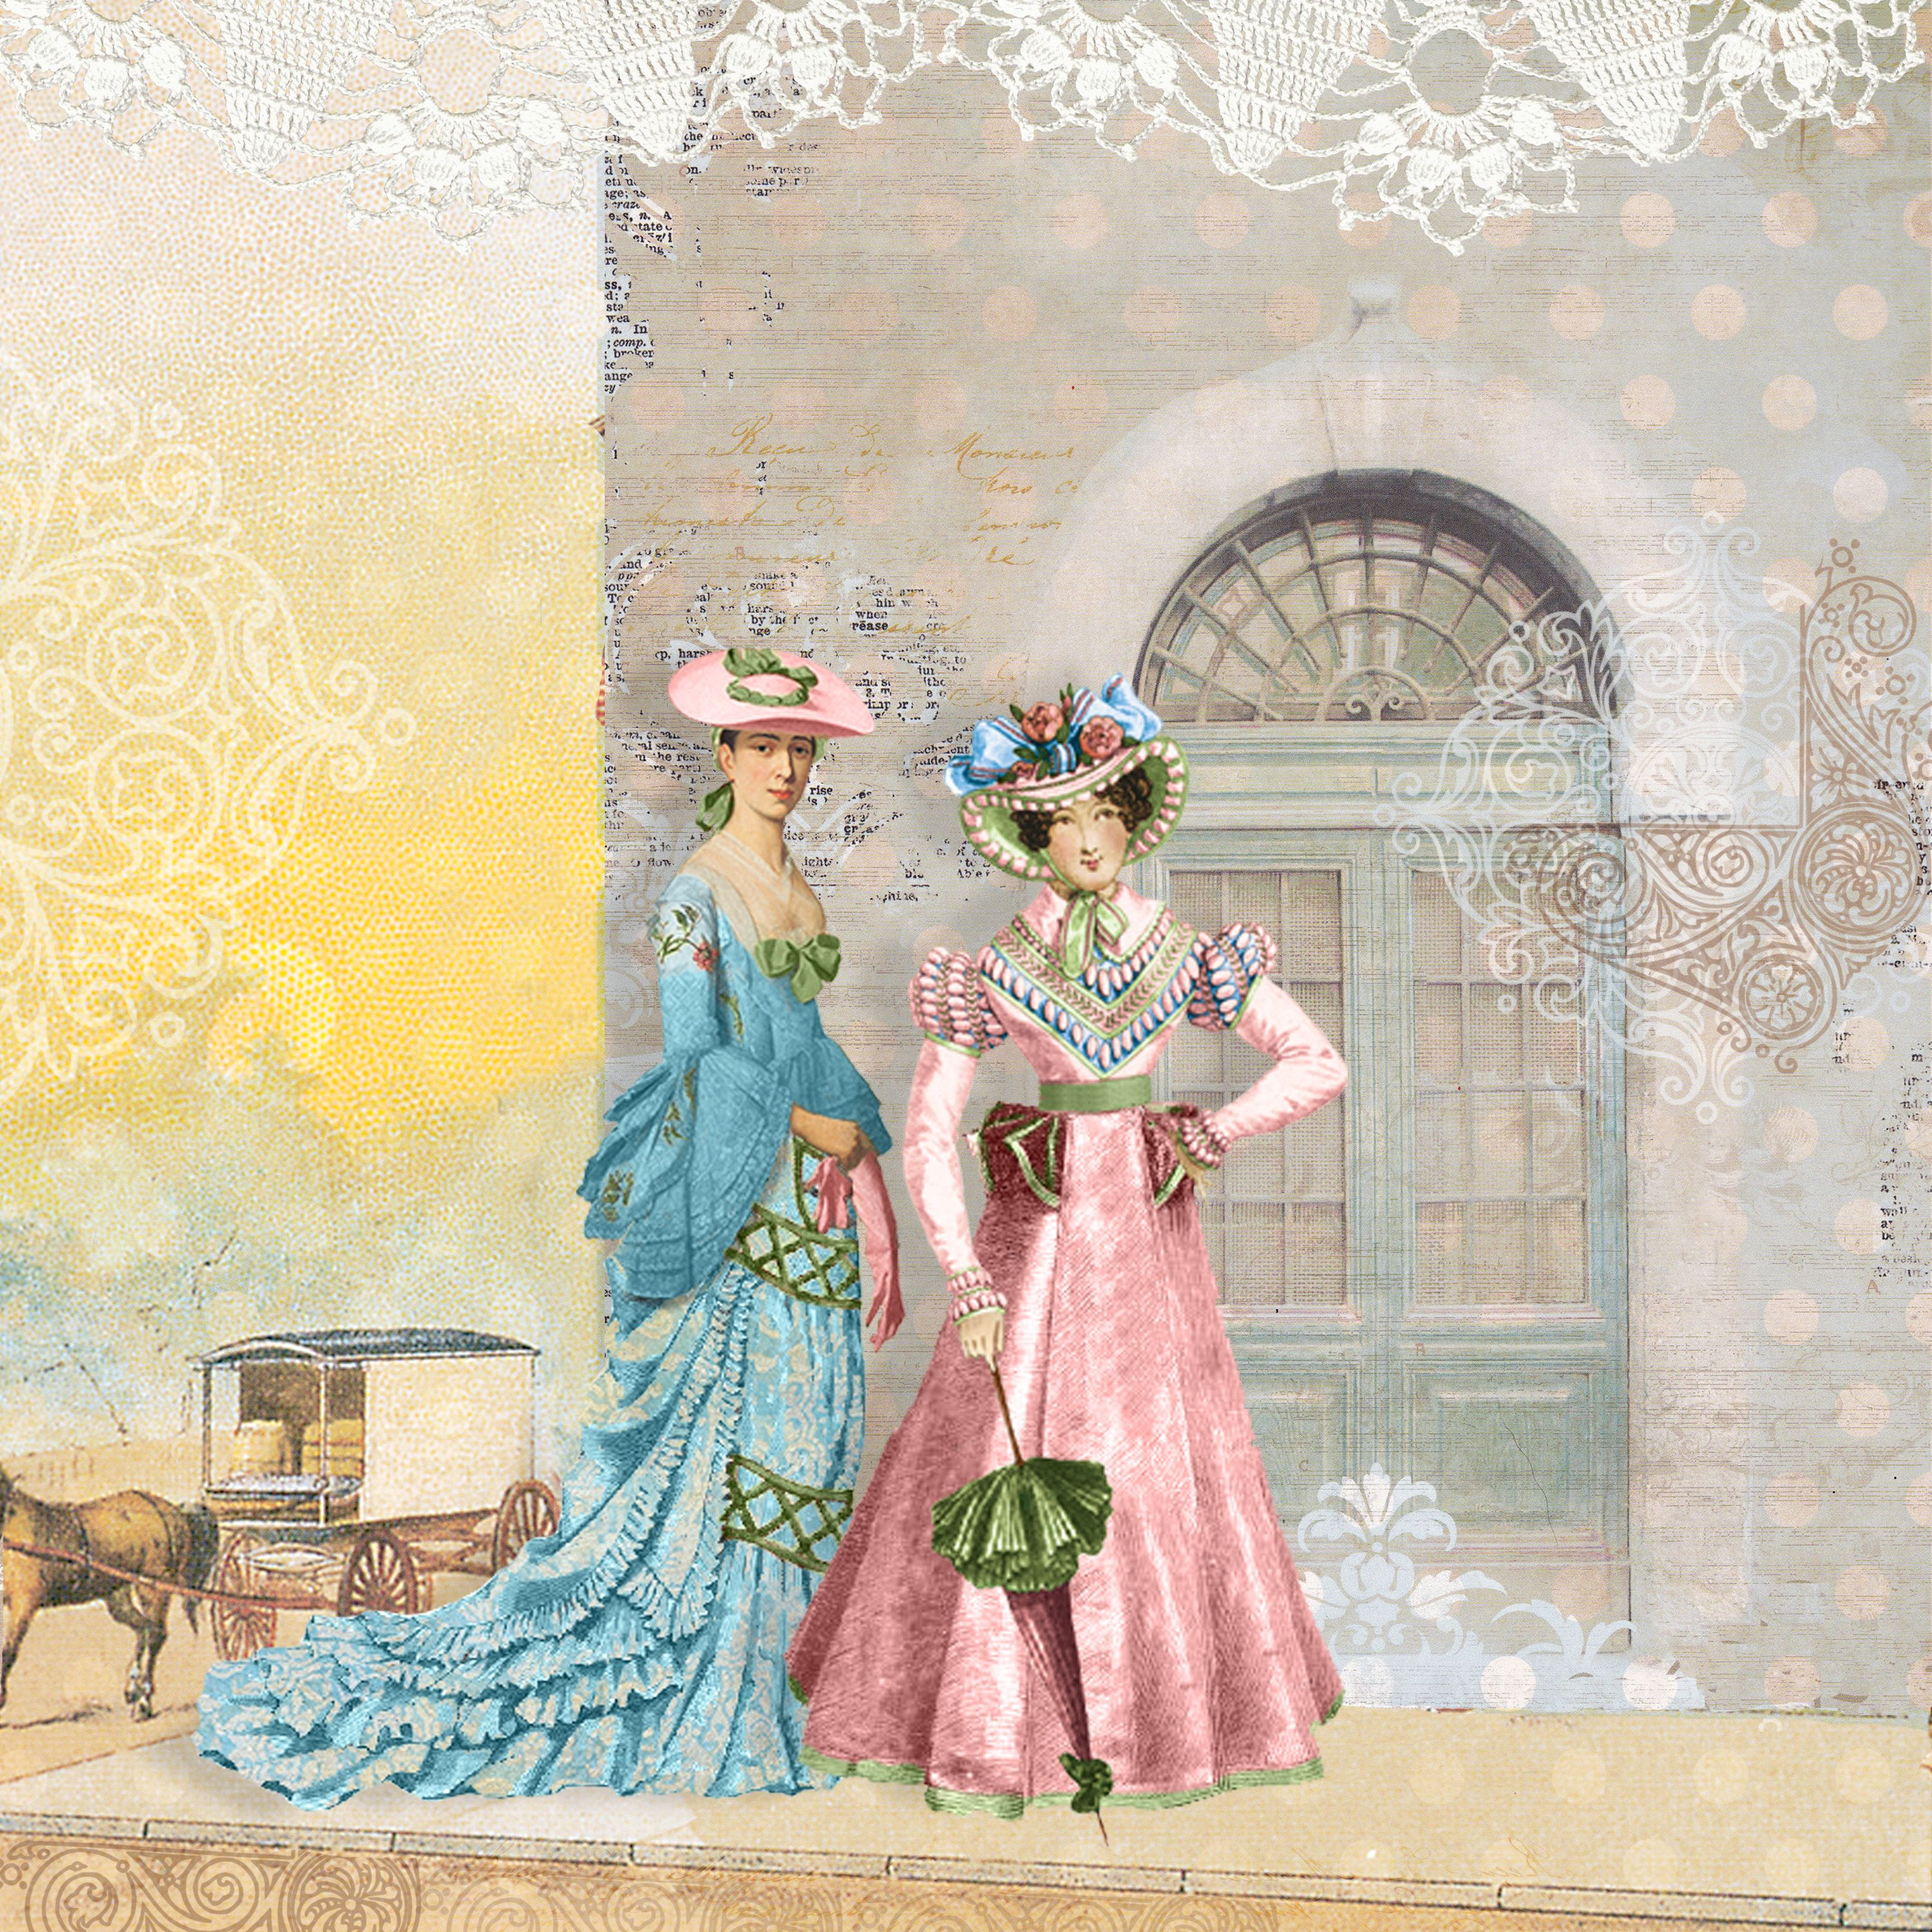 Avenue Stroll AS collage sheets/papers: The Lady In Blue Victorian ...